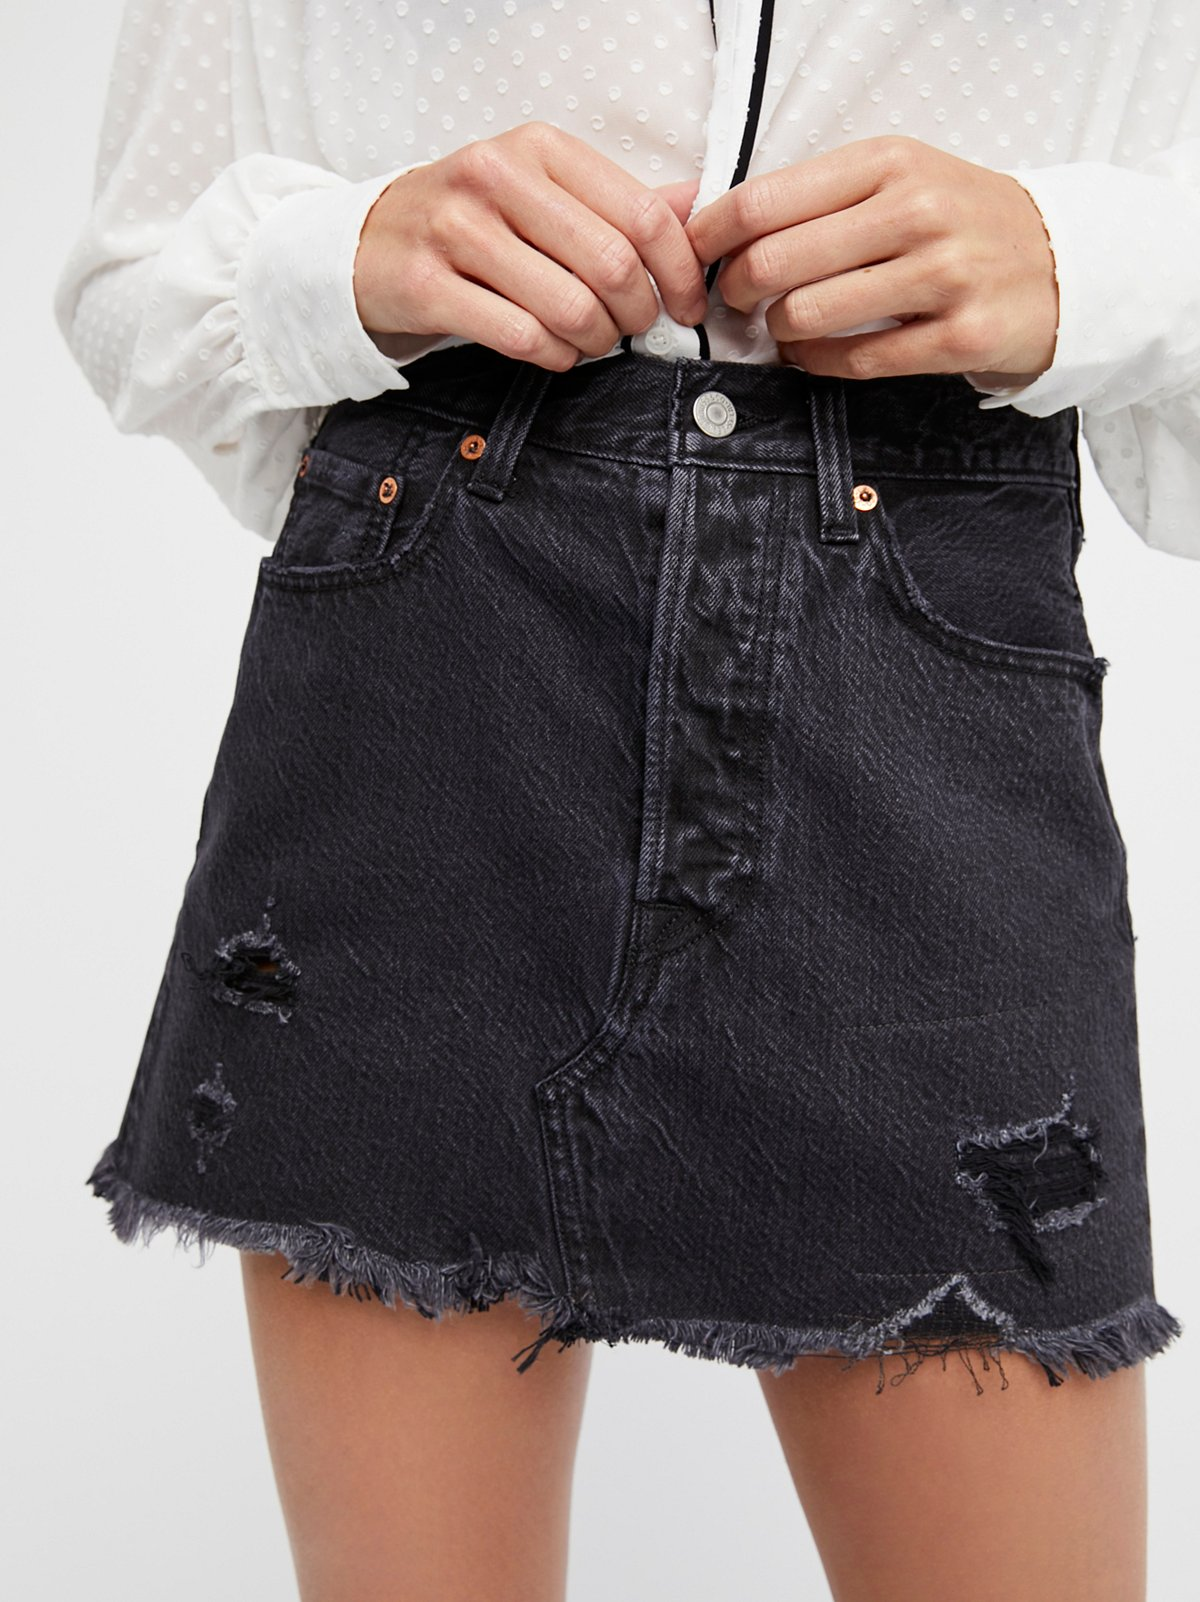 Deconstructed Denim Skirt